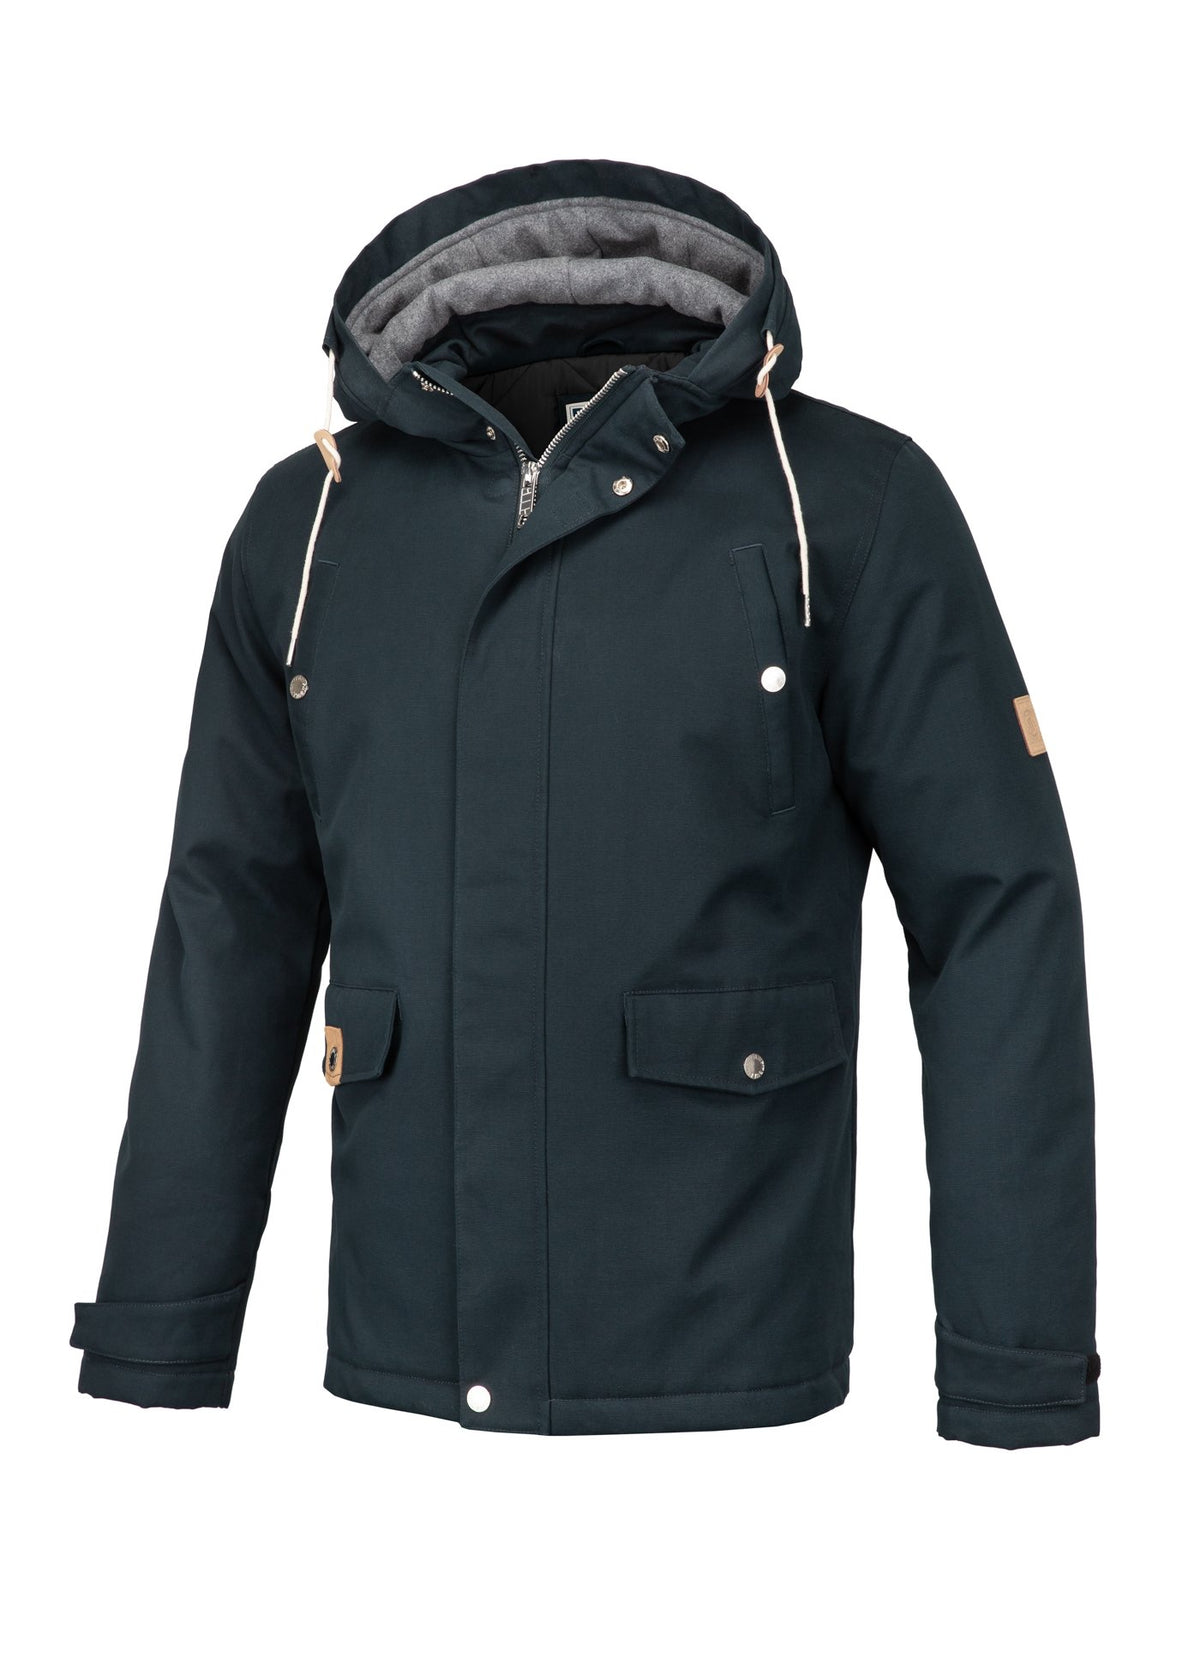 Parka Jacket TOPS Dark Navy - Pitbull West Coast U.S.A.